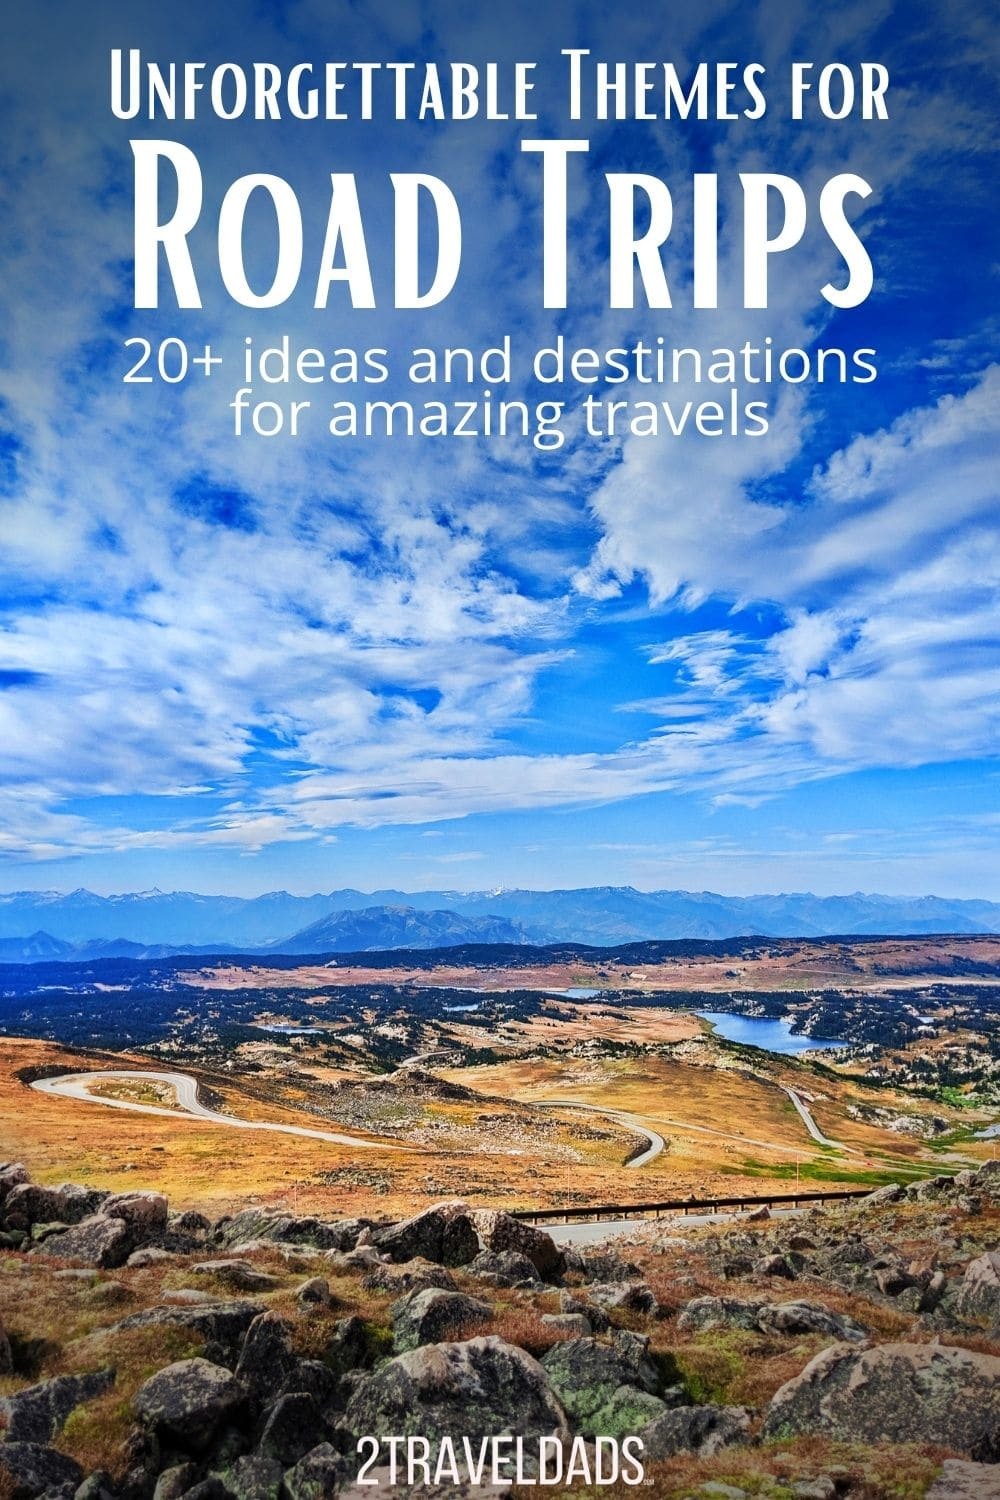 20+ themes for road trips that you will never forget. From epic photography journeys to family fun or romantic vacations, these road trip themes and plans are sure to inspire new and amazing adventures.